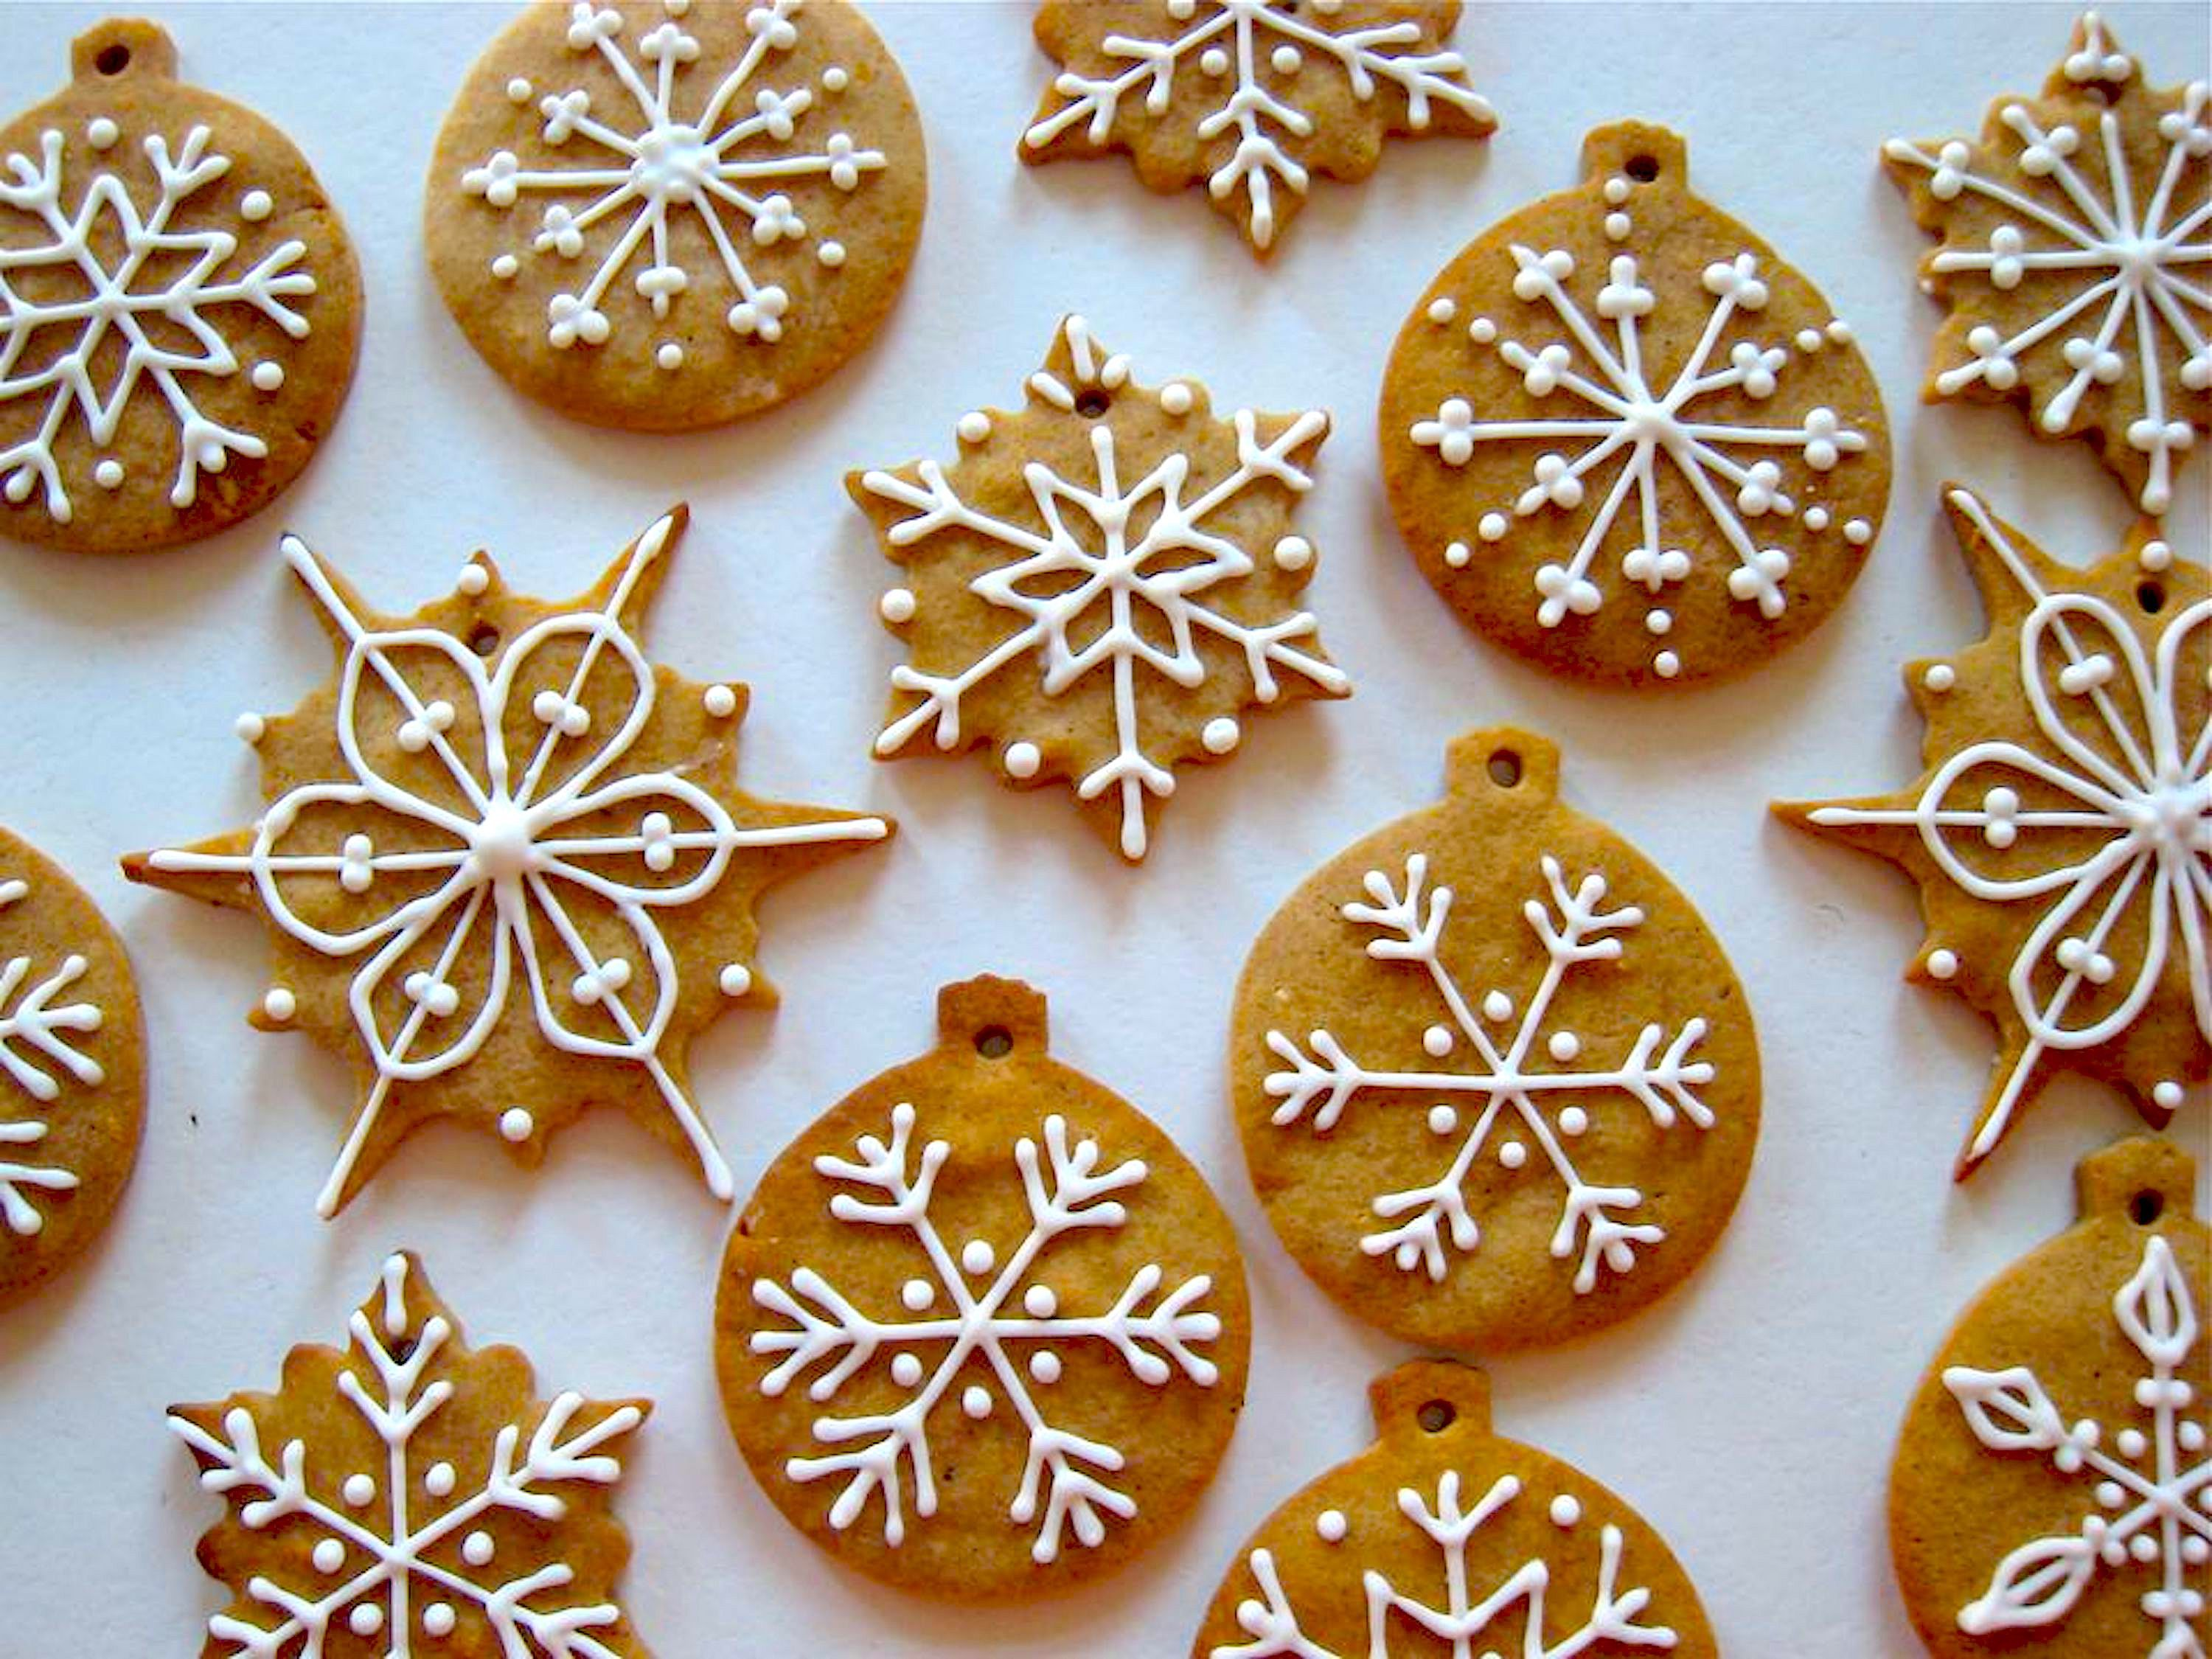 Christmas Cookies From Around The World With Pictures.16 Christmas Cookie Recipes From Around The World